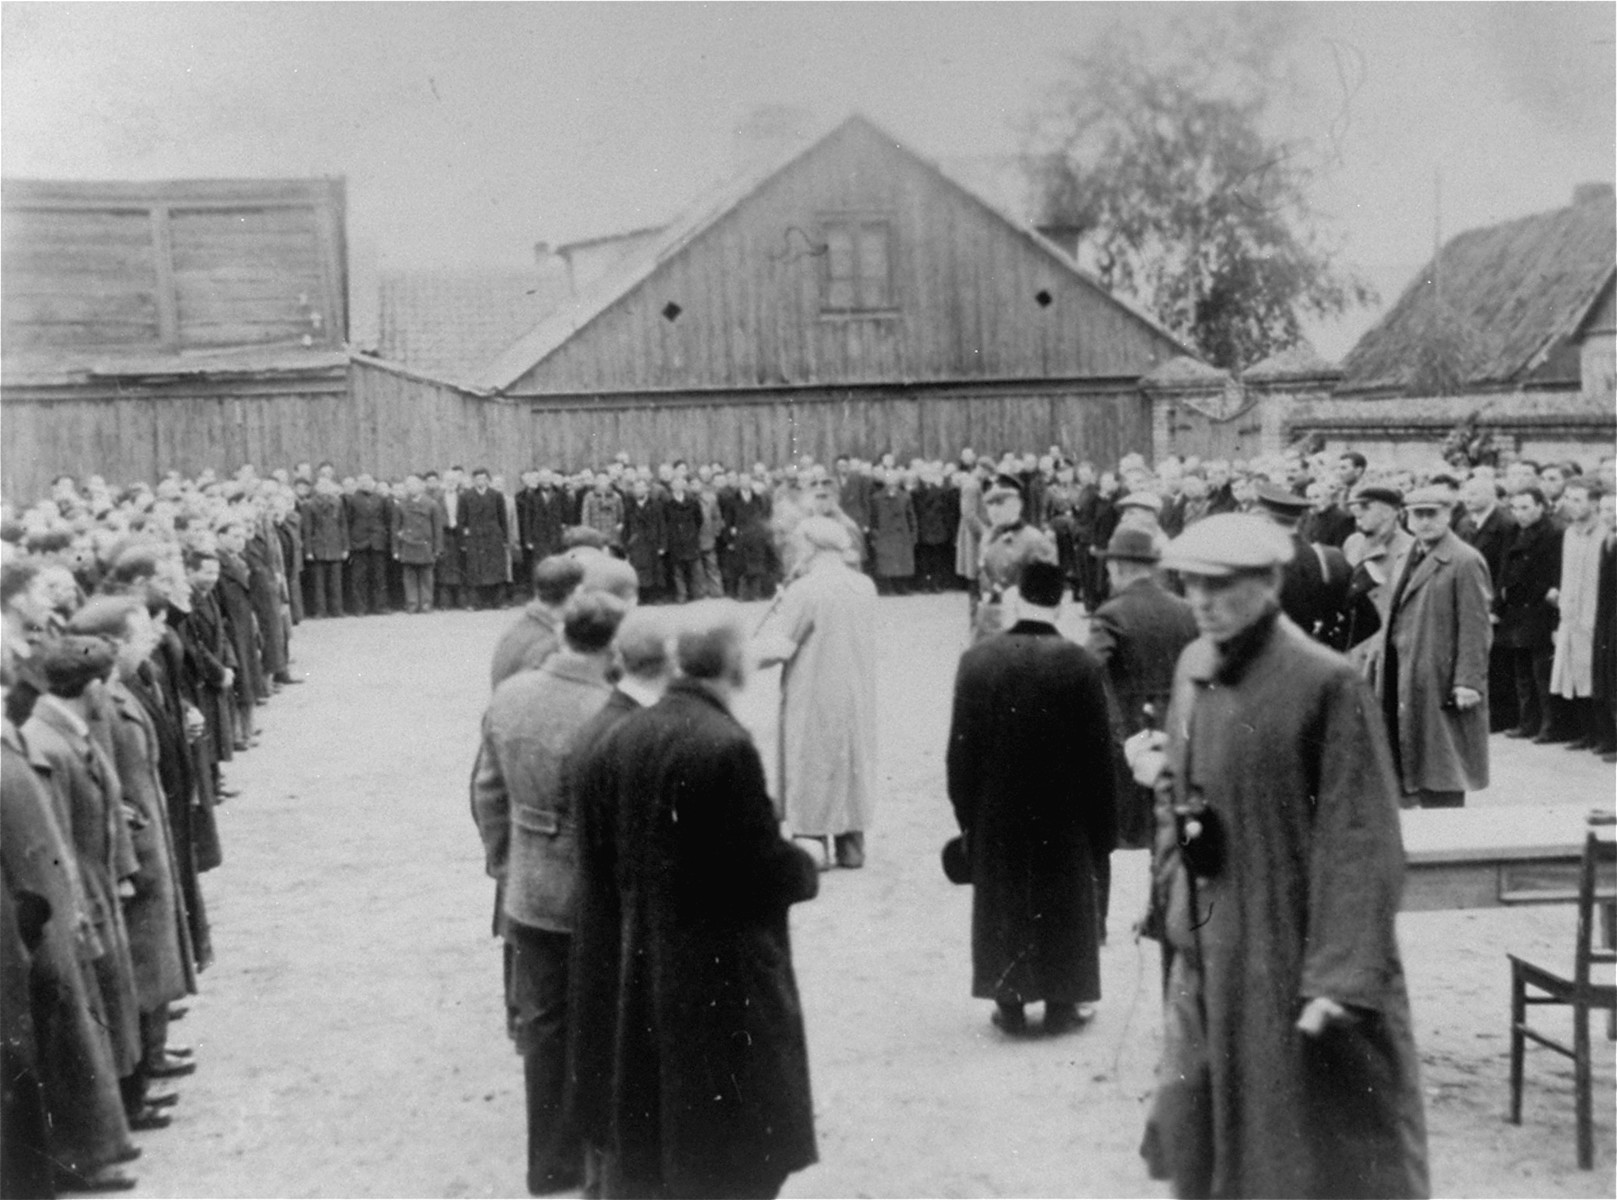 Jewish men are assembled in a large courtyard or public square in Raciaz.